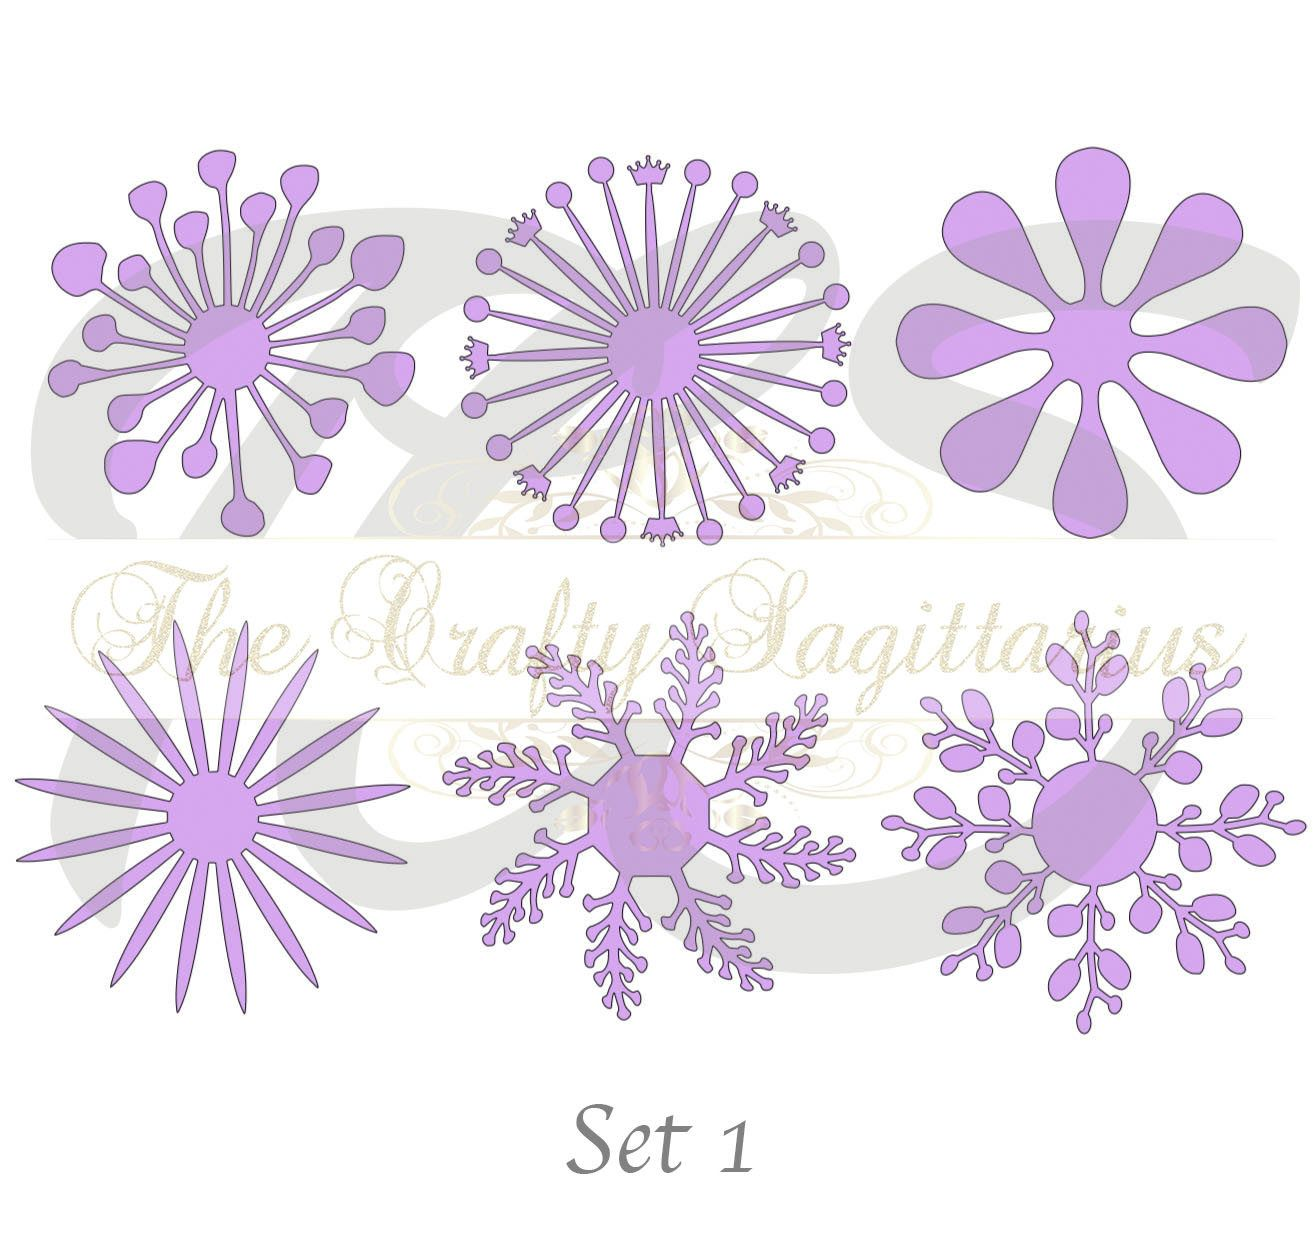 Set 1 Svg Png Dxf 6 Different Flat Center For Paper Flowers